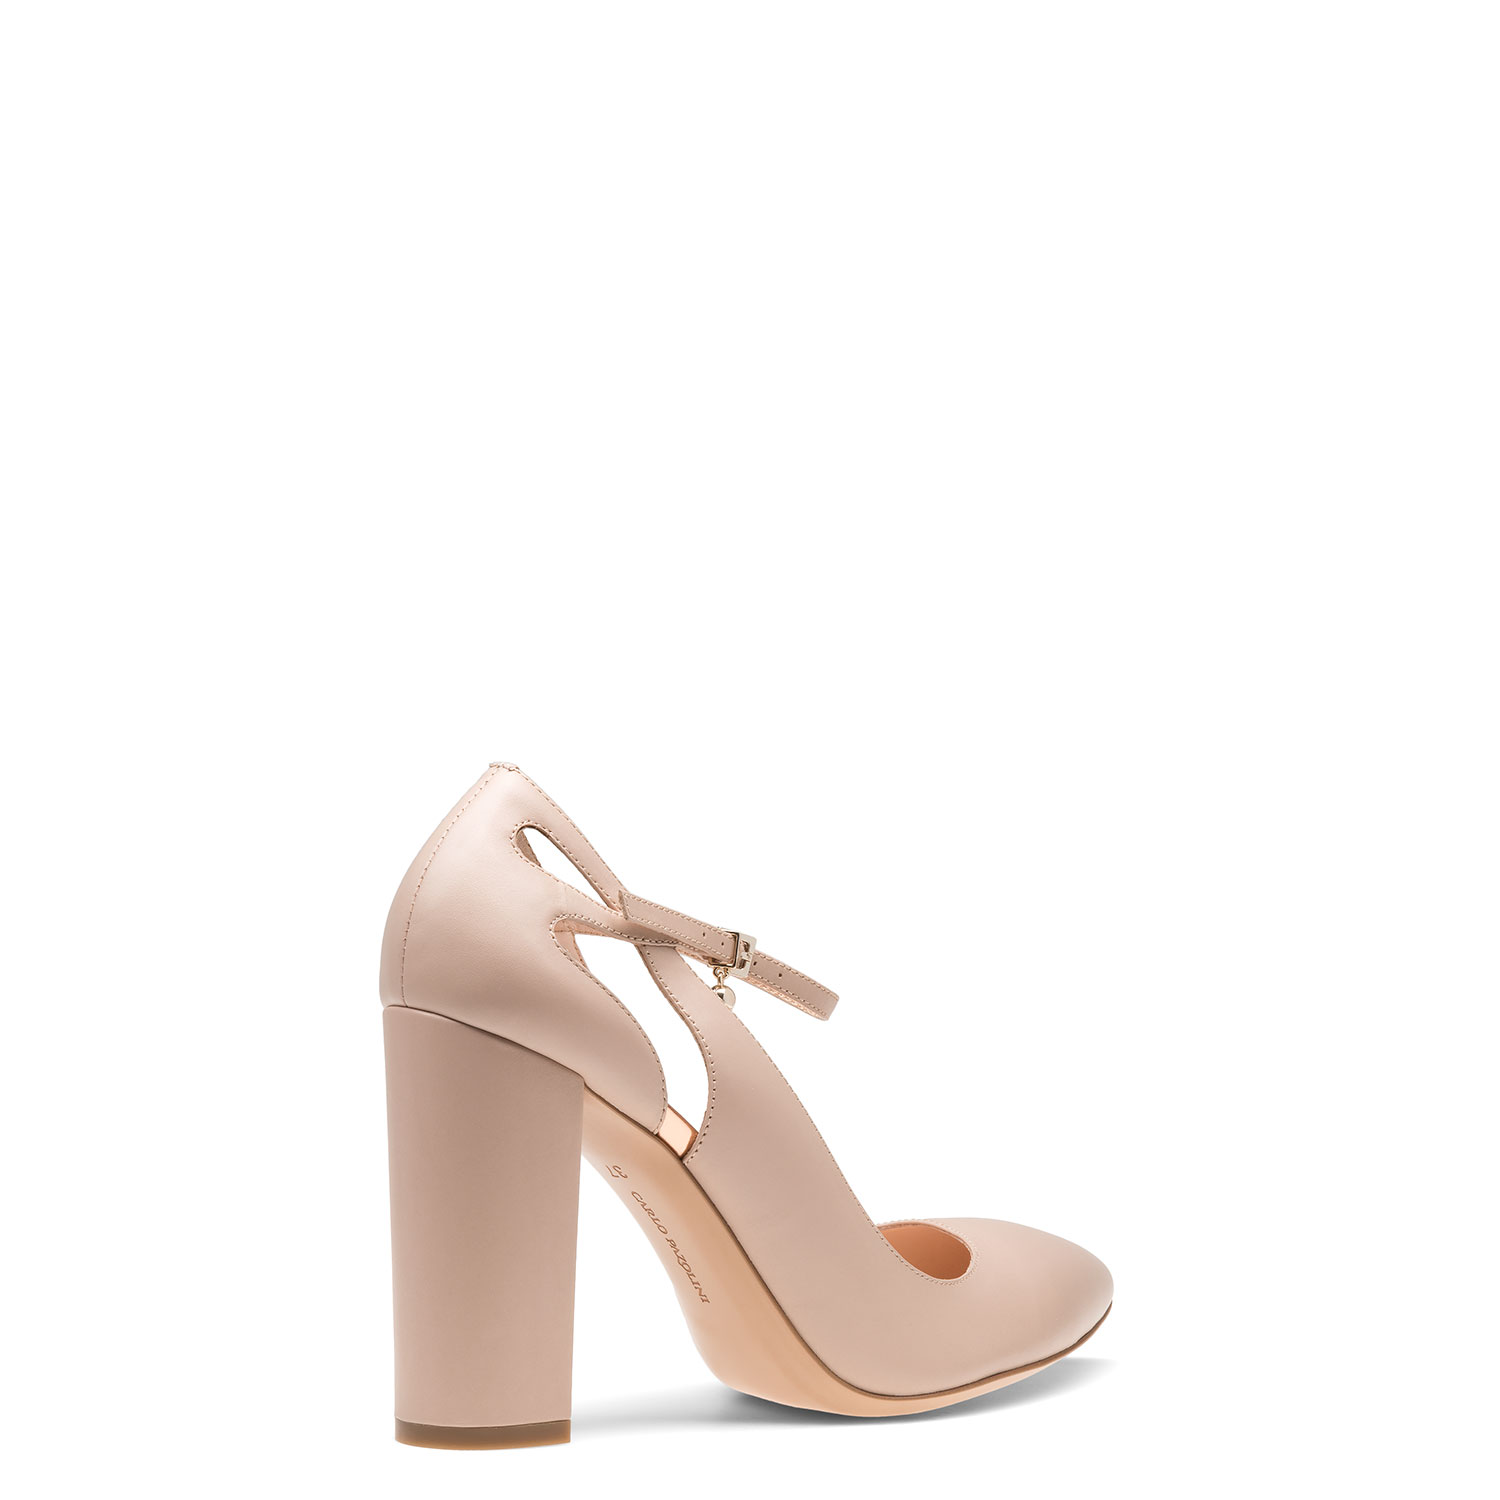 Women's shoes CARLO PAZOLINI FL-FLN3-3